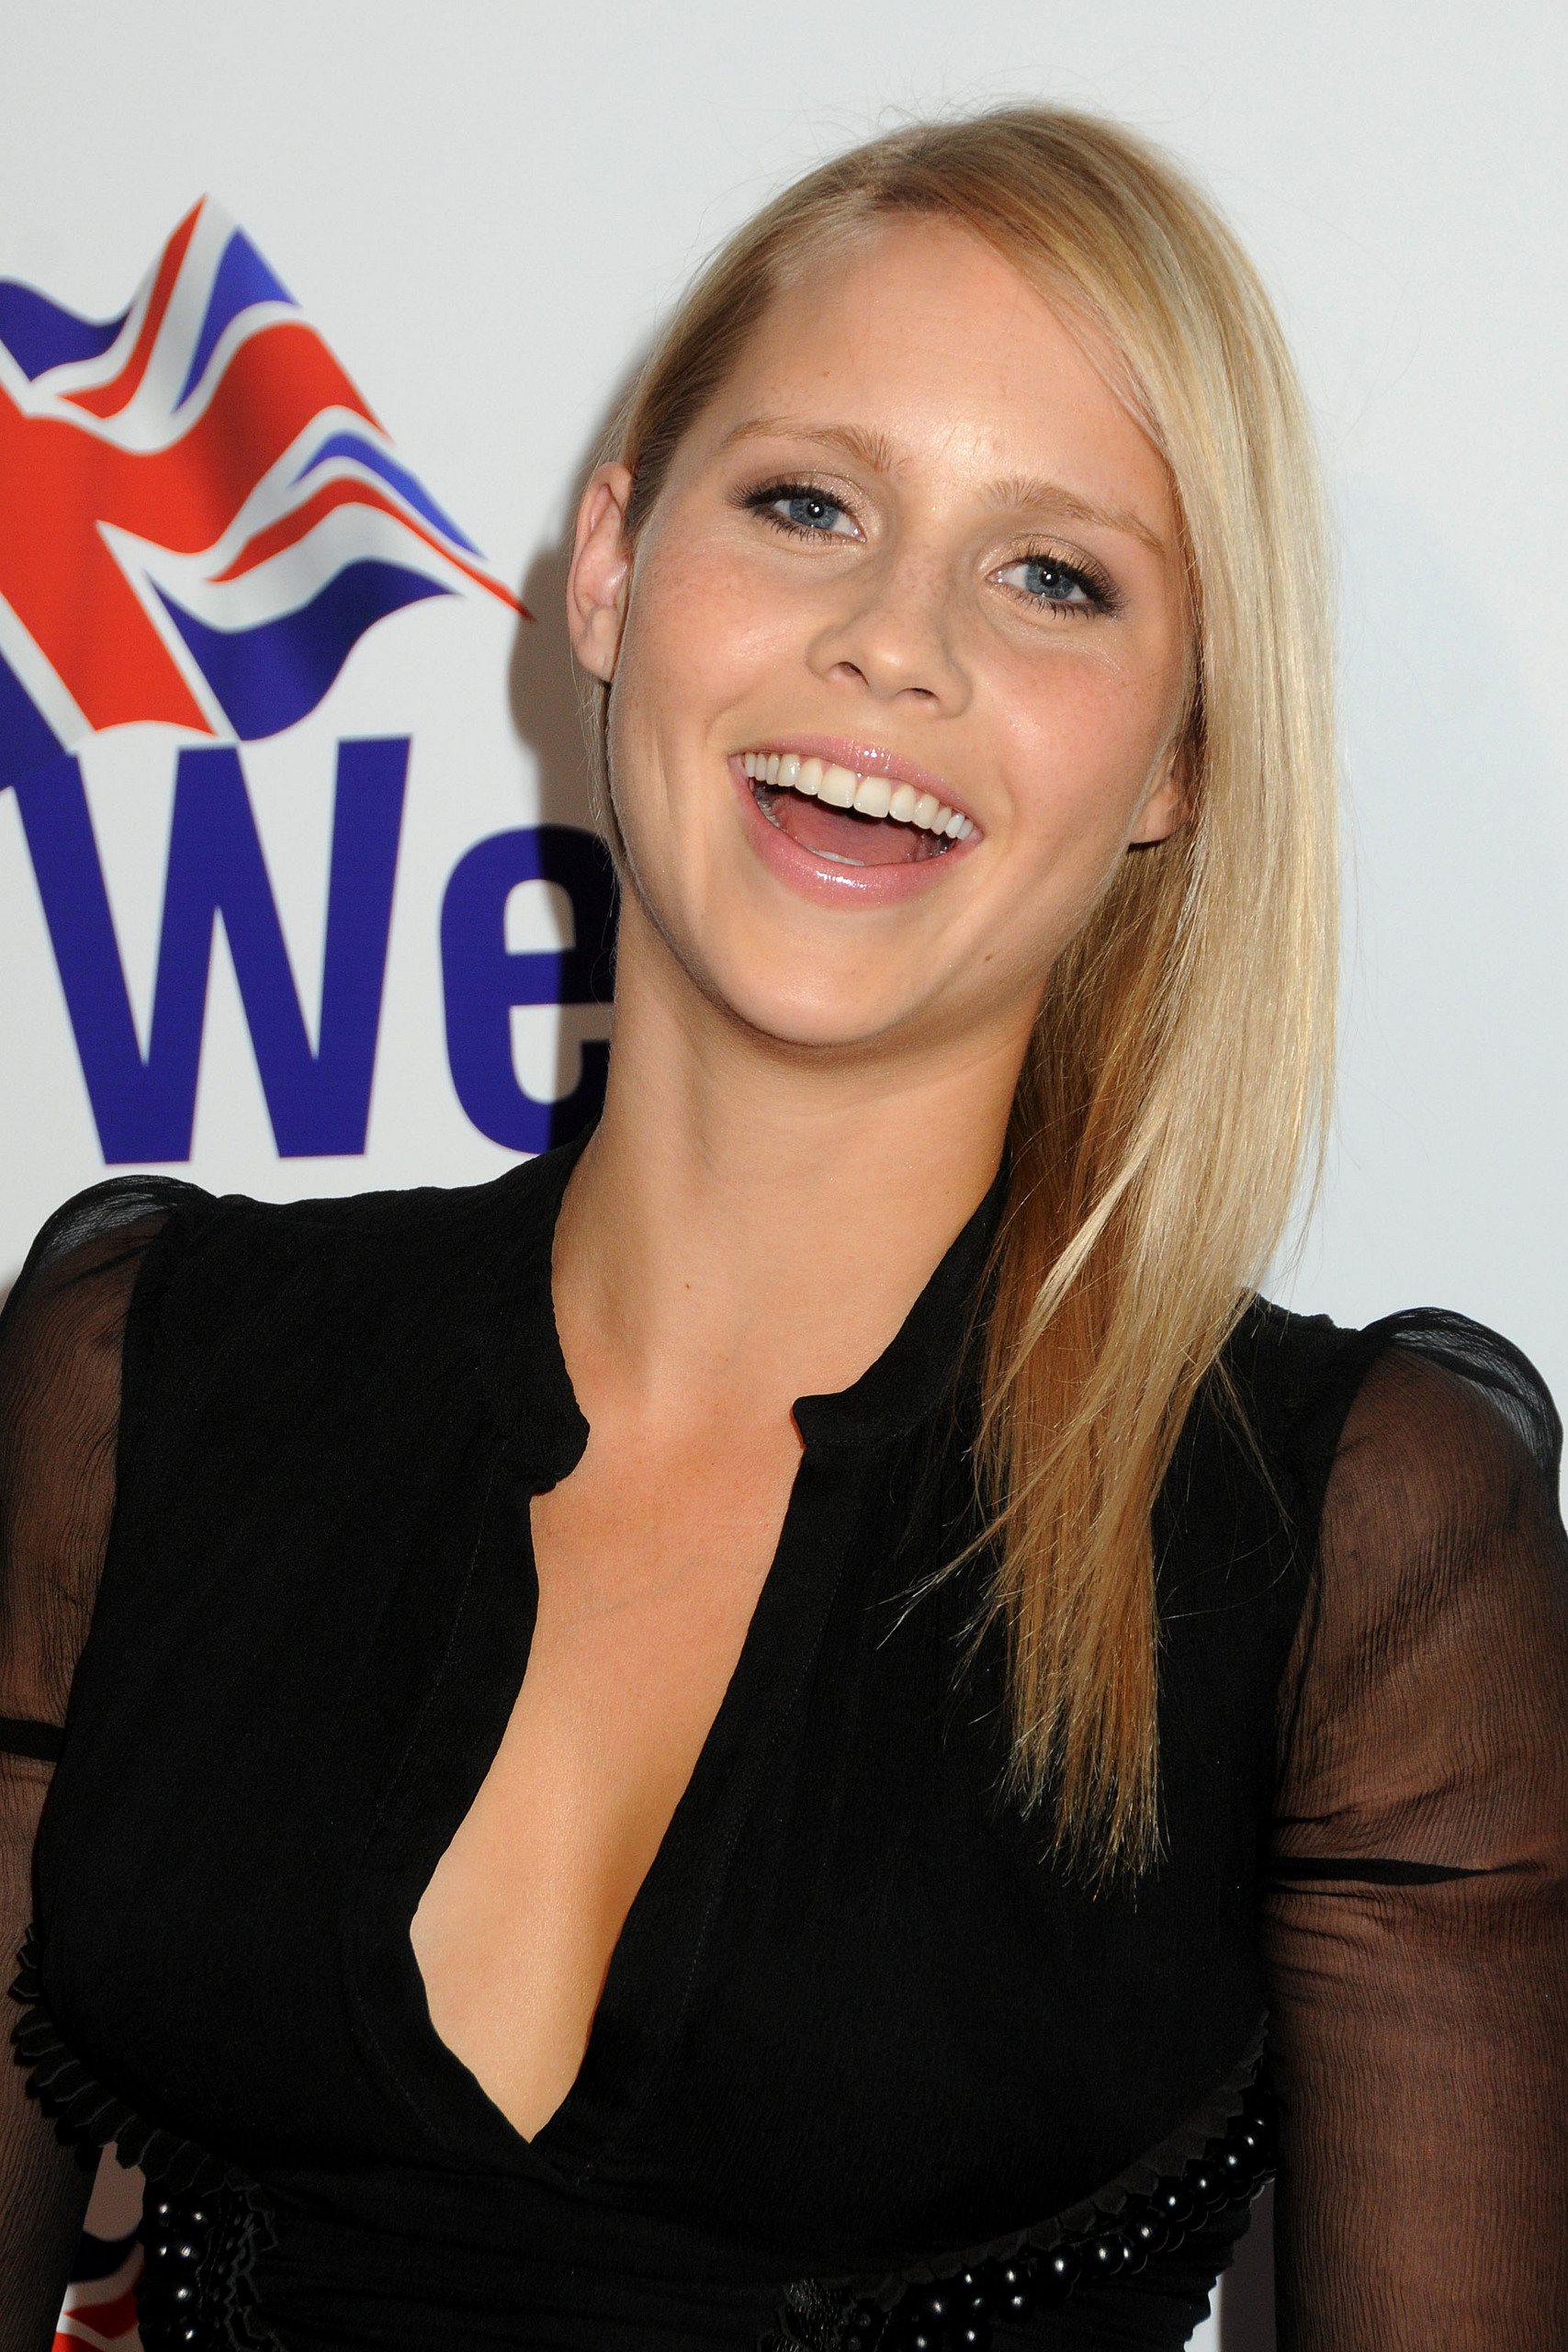 Claire-at-Official-Launch-of-BritWeek-April-24th-2012-claire-holt